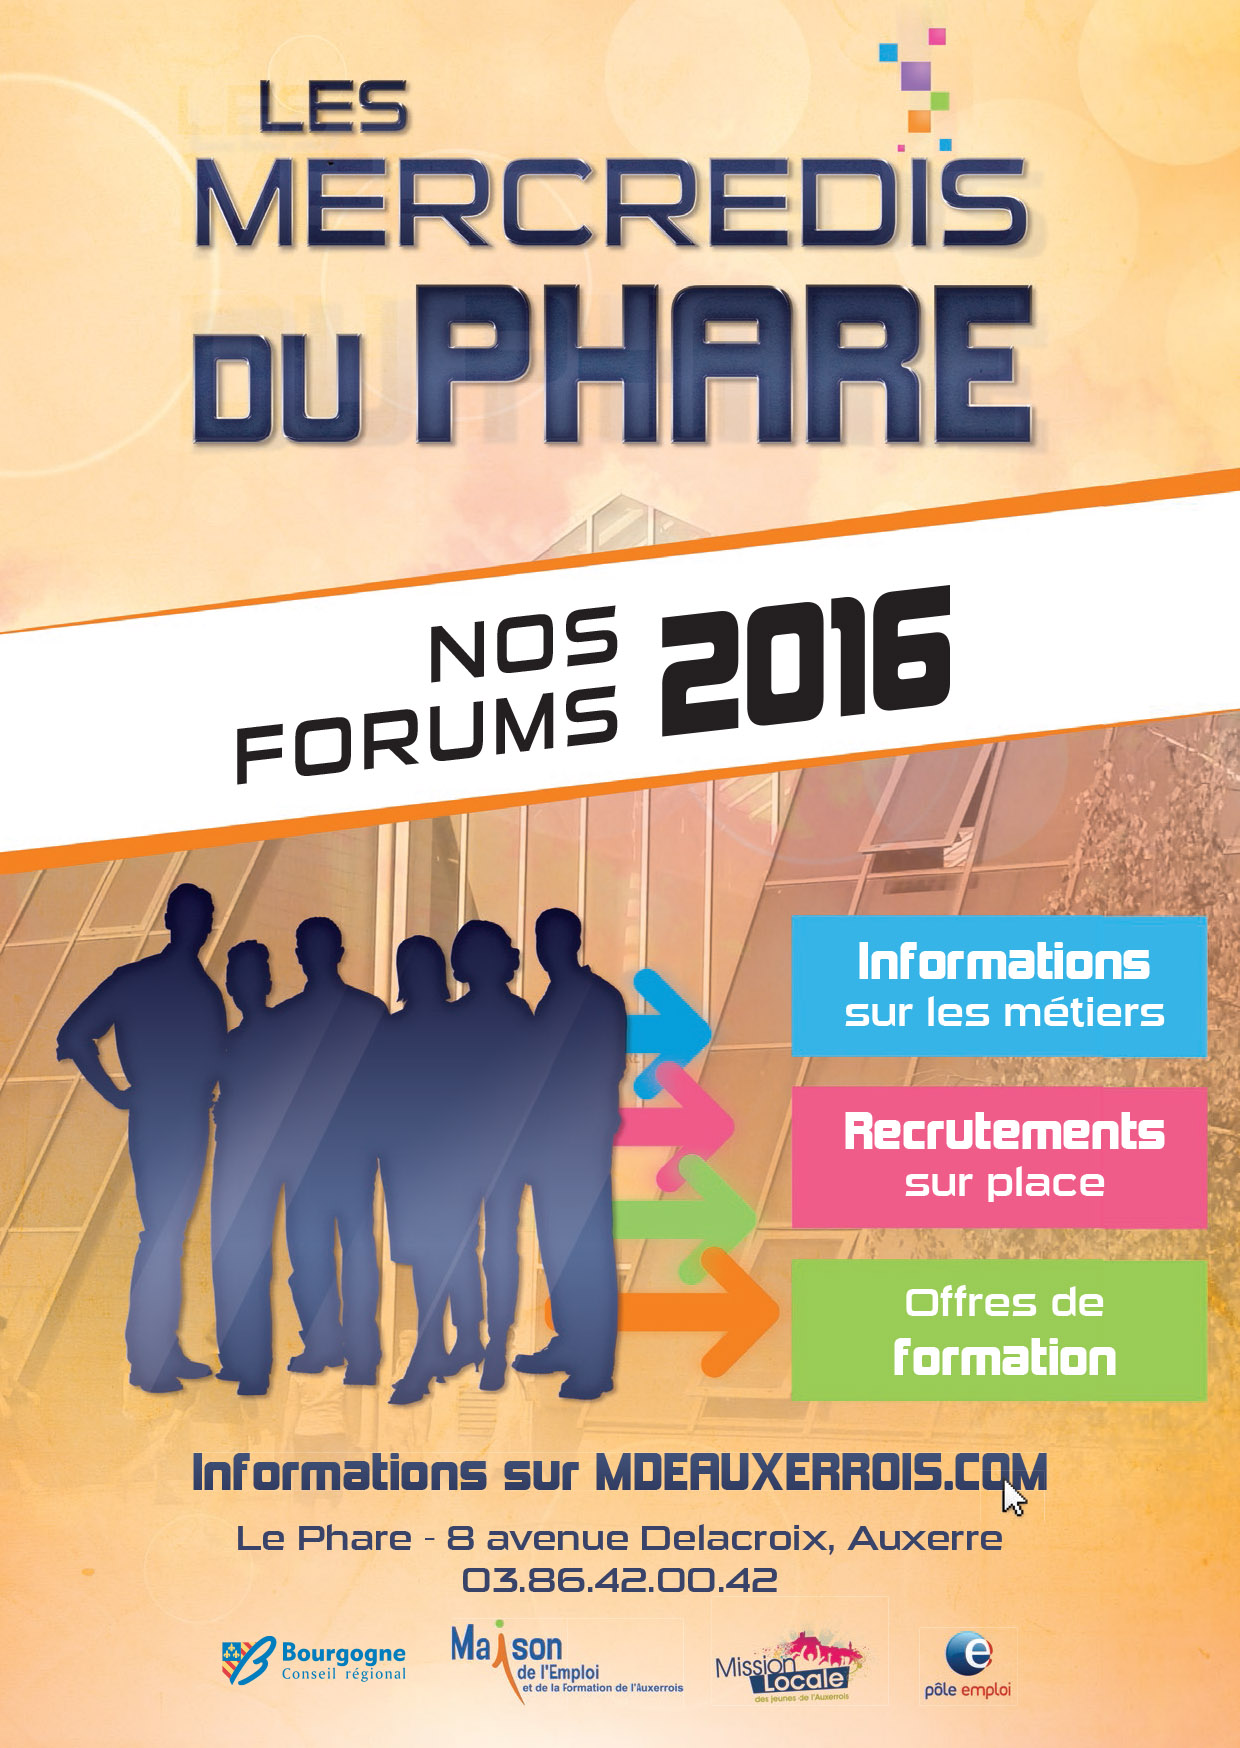 4 u00e8me forum des mercredis du phare